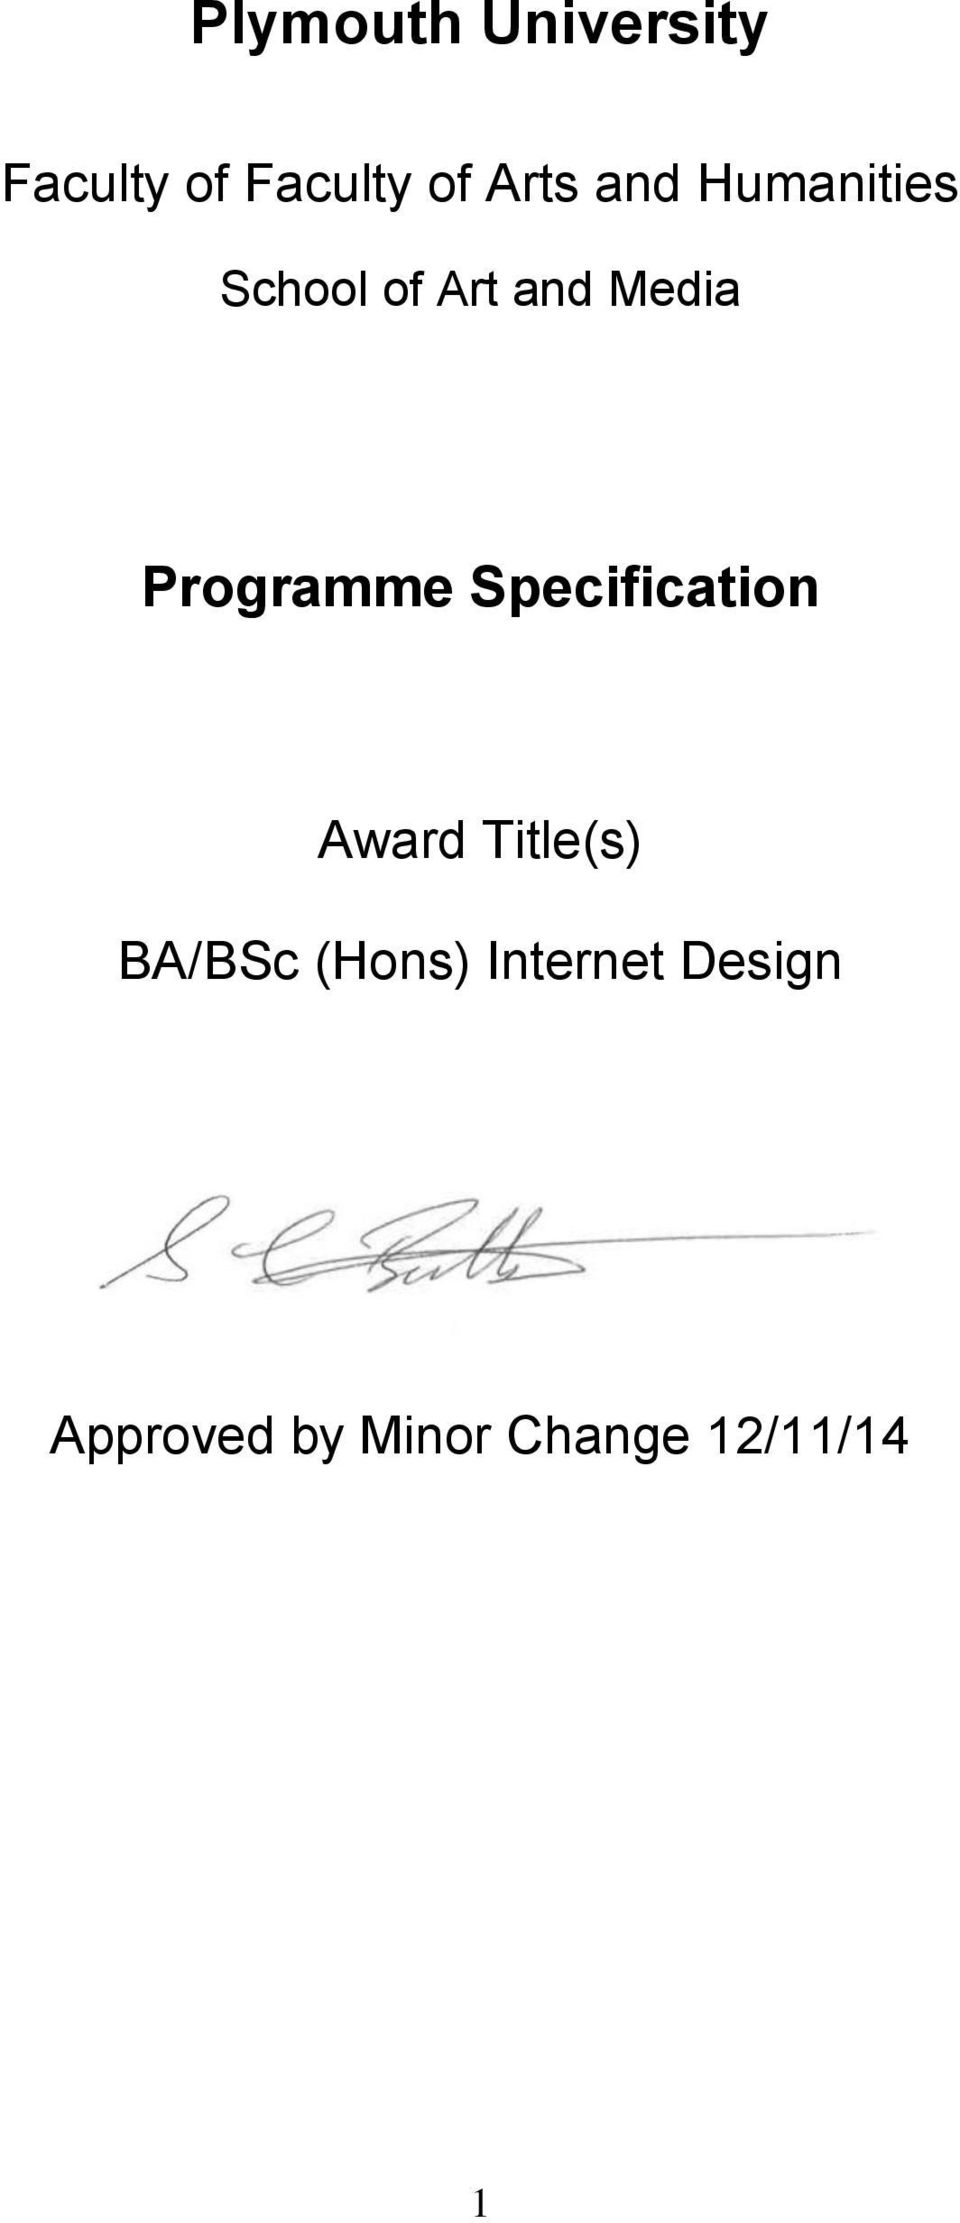 Programme Specification Award Title(s) BA/BSc